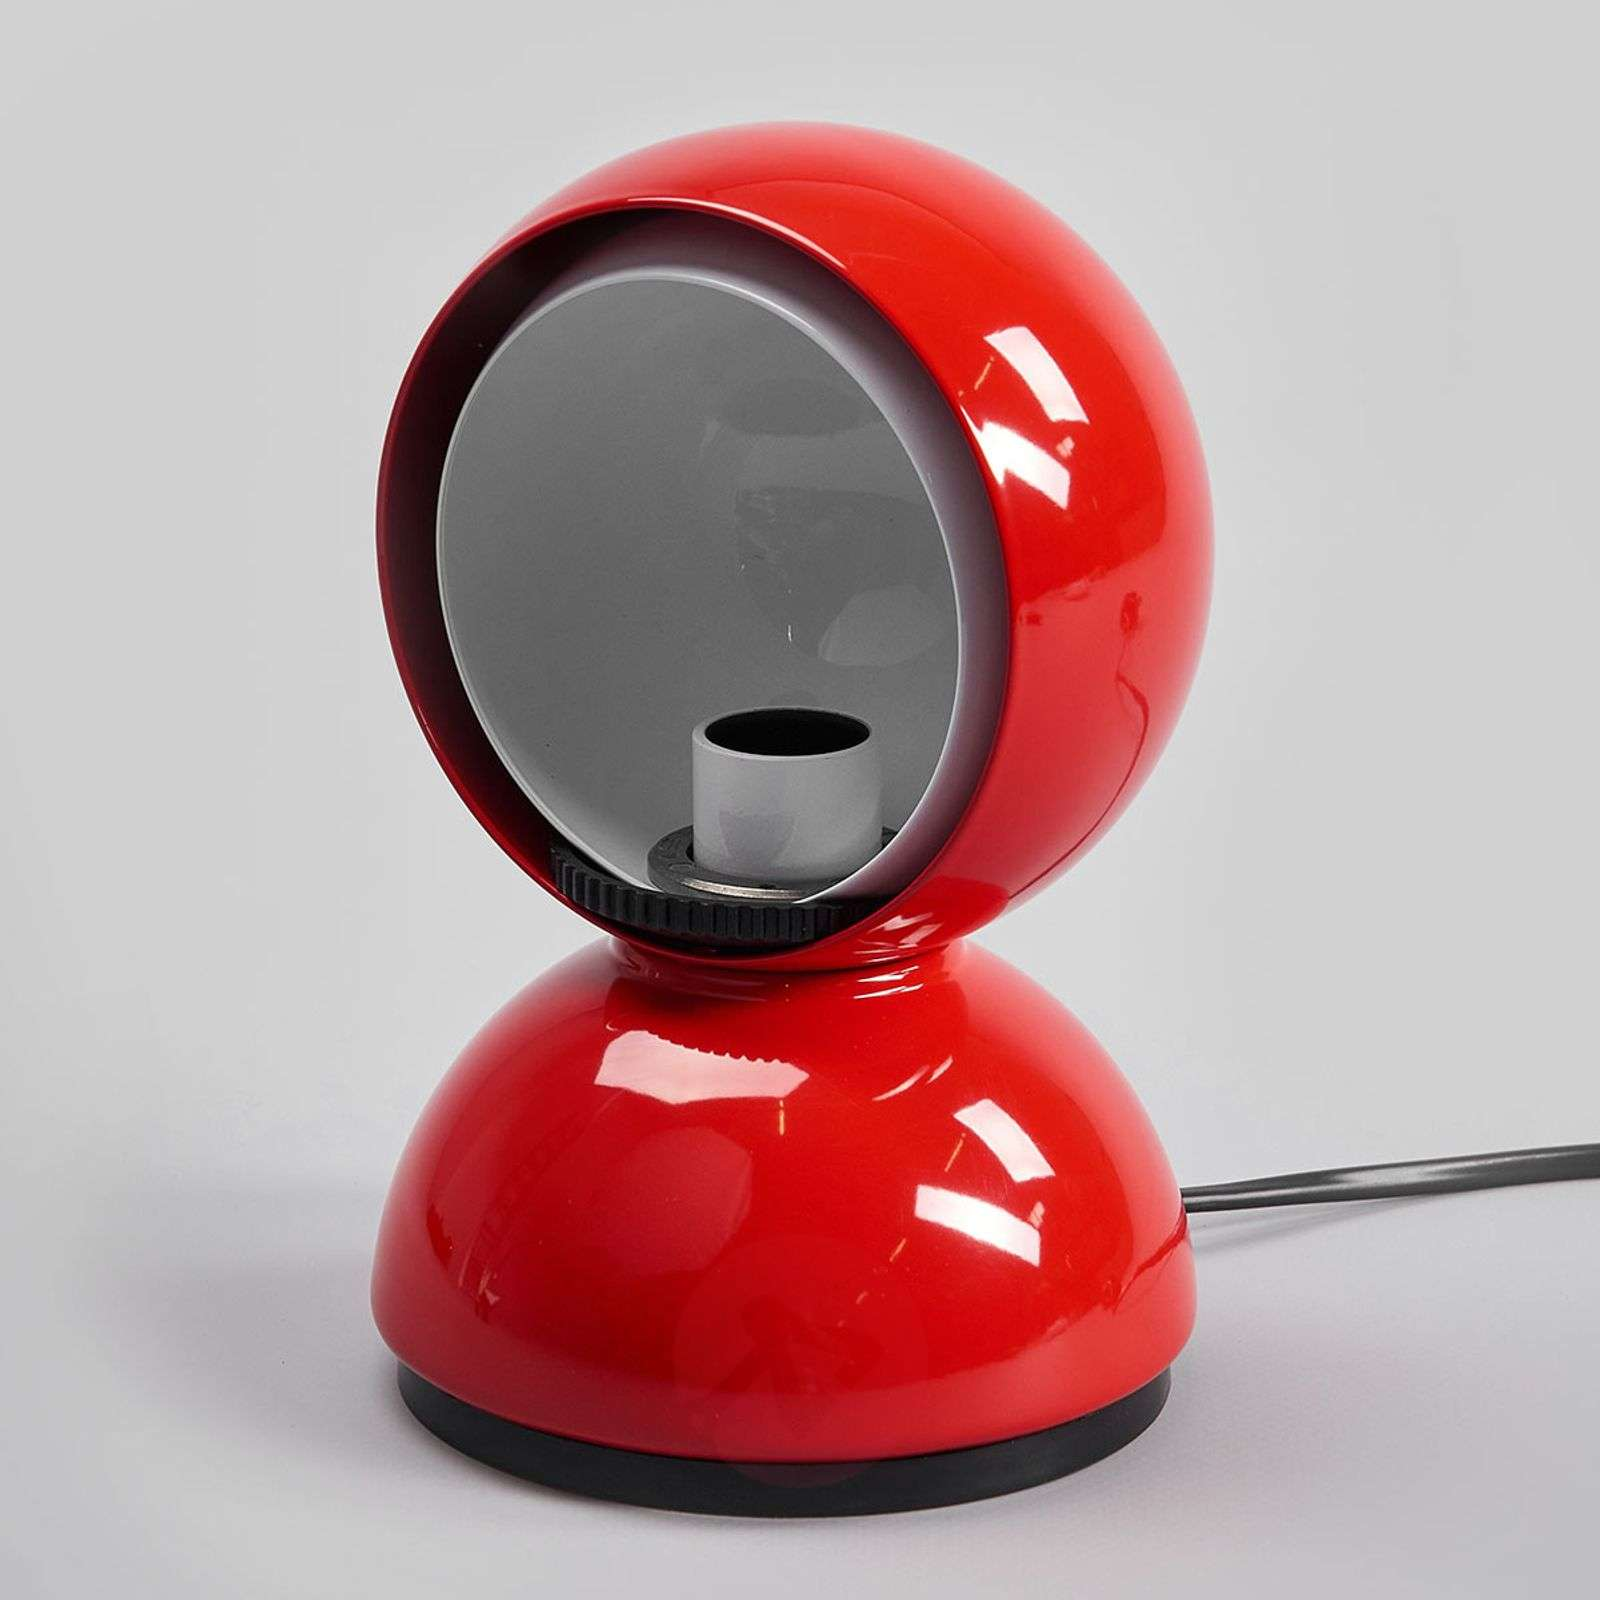 Eclisse red designer table light-1060020-01